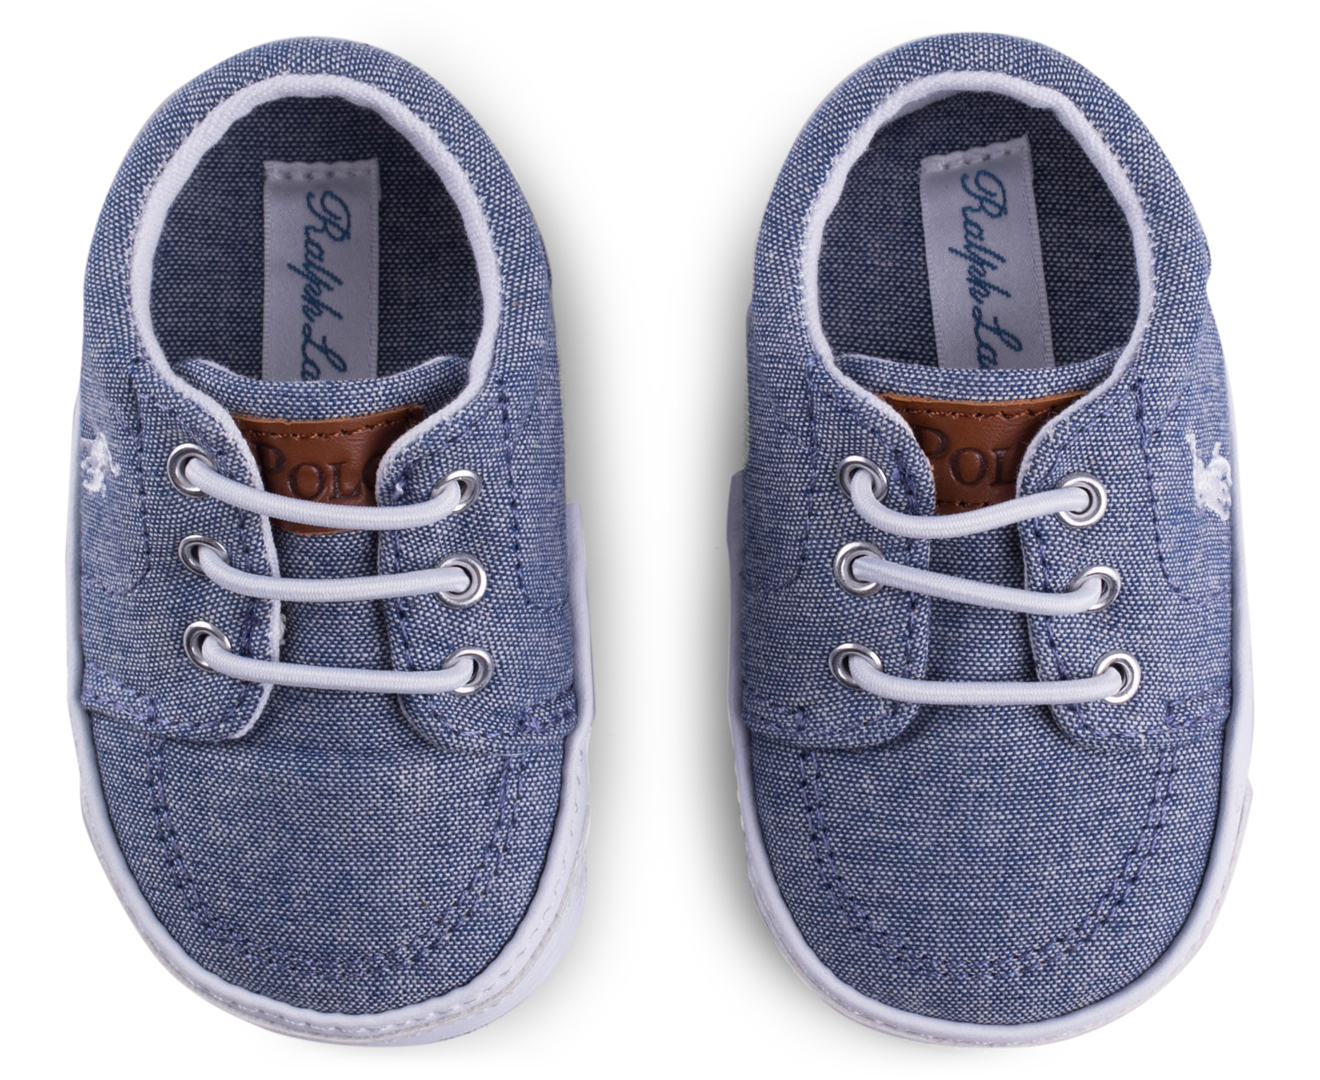 Chambray Blue Shoe Laces